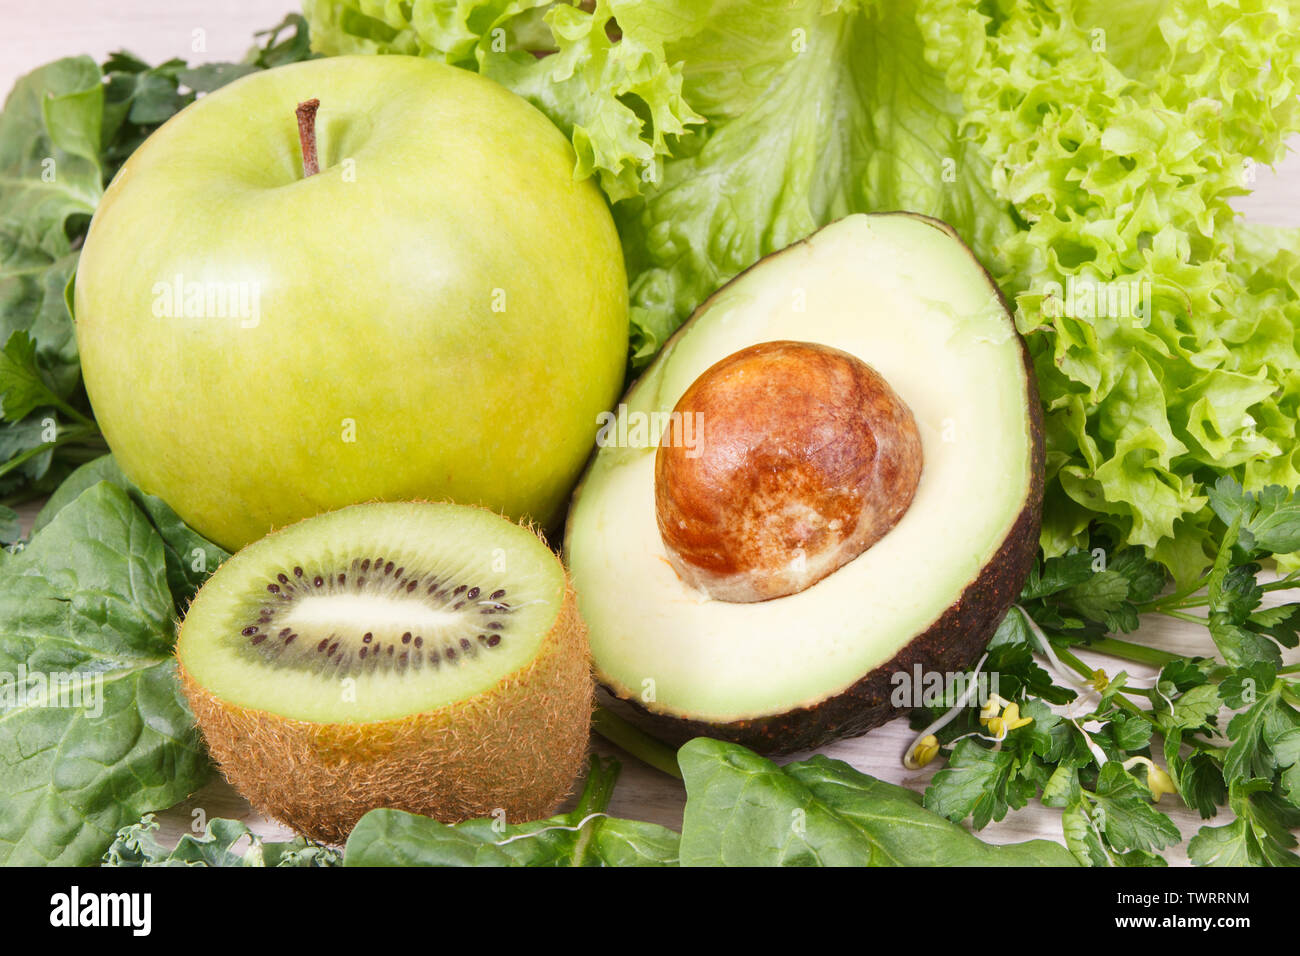 Fresh ripe fruits with vegetables and sprouts as healthy nutritious snack containing natural vitamins - Stock Image